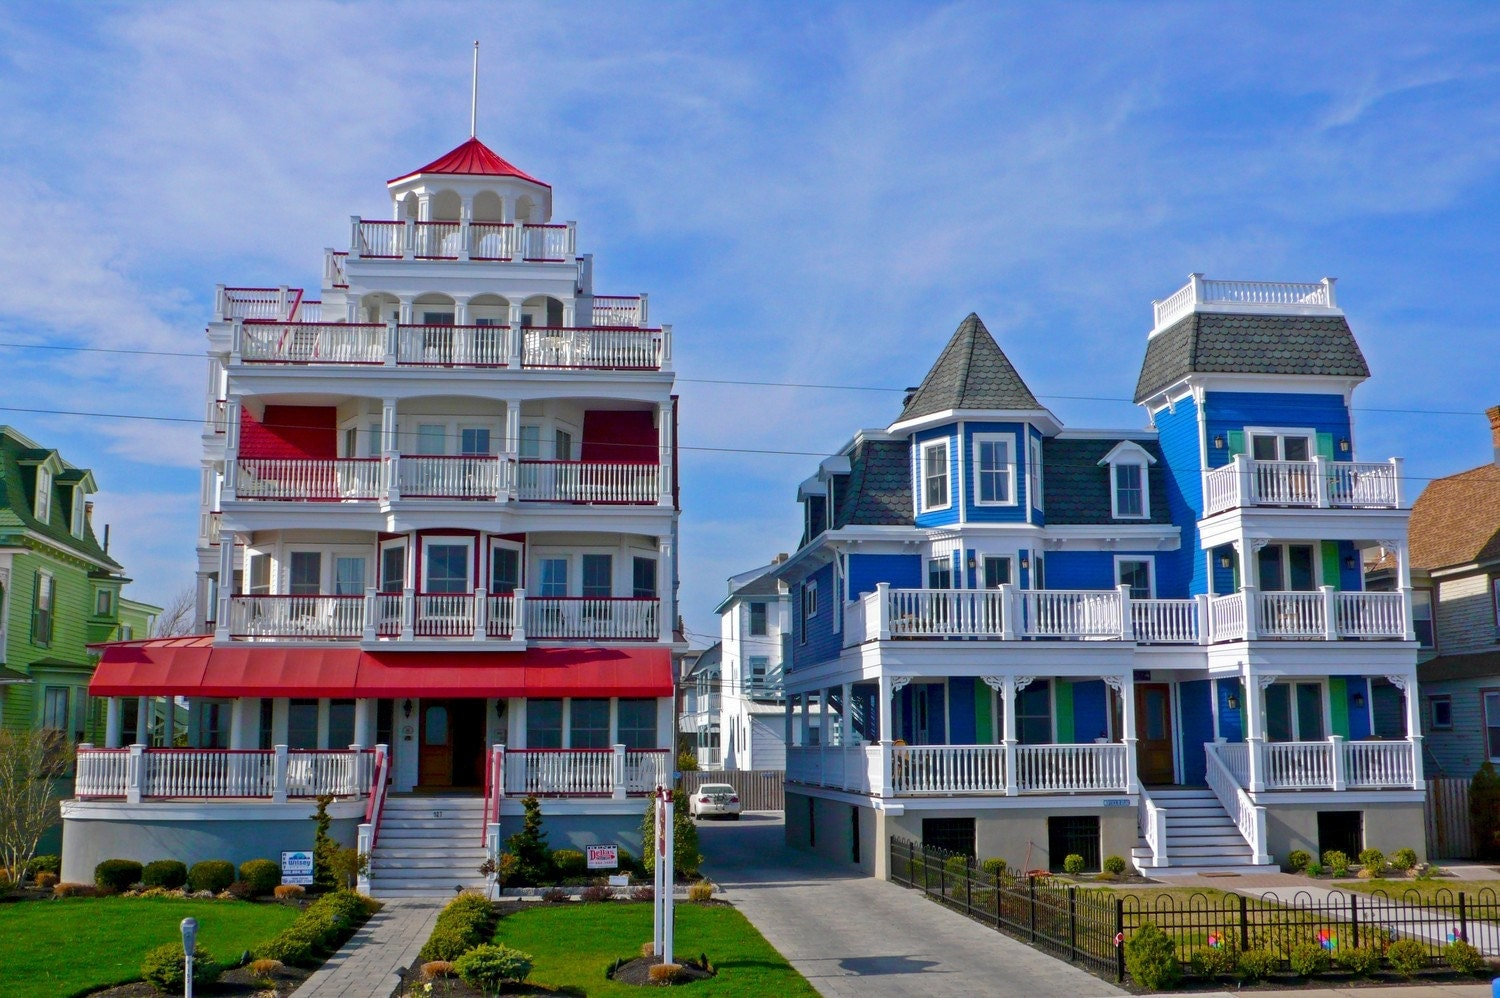 Cape May Victorian Houses Photograph 8x10 By Lifethroughmylens